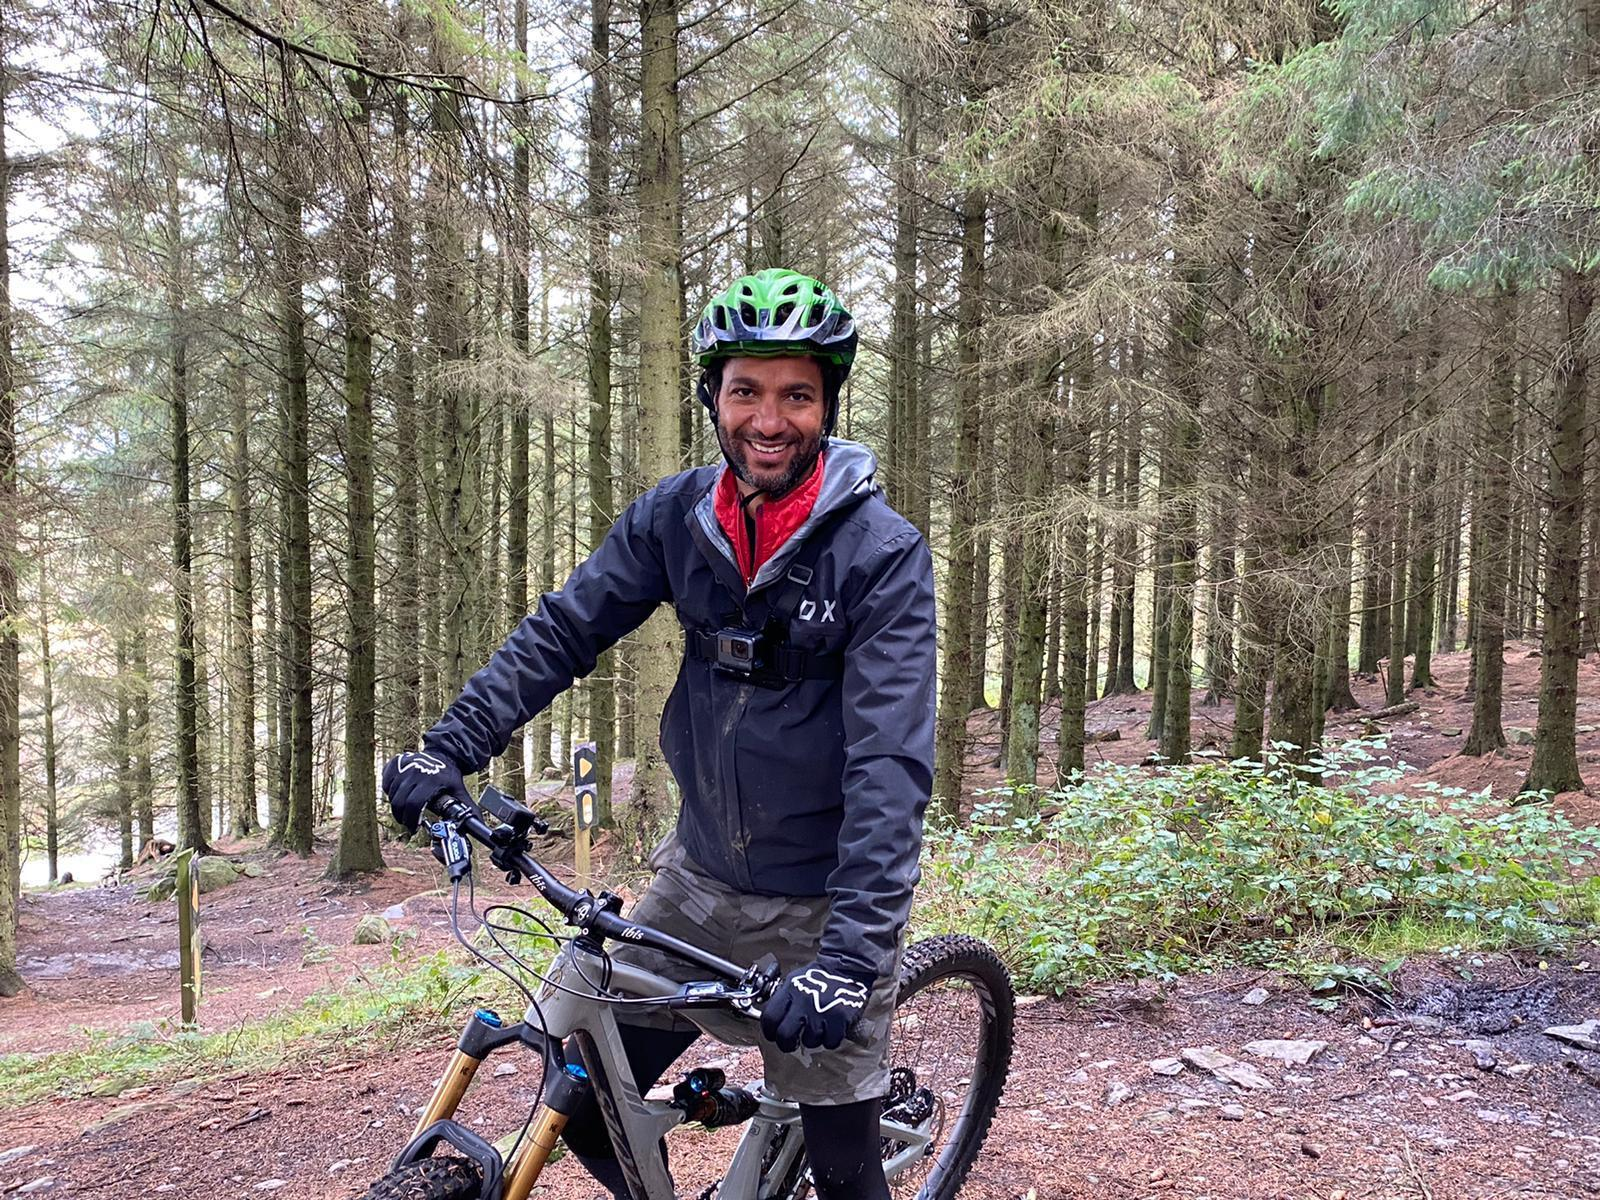 Sean tries out mountain biking in the Llandegla forest